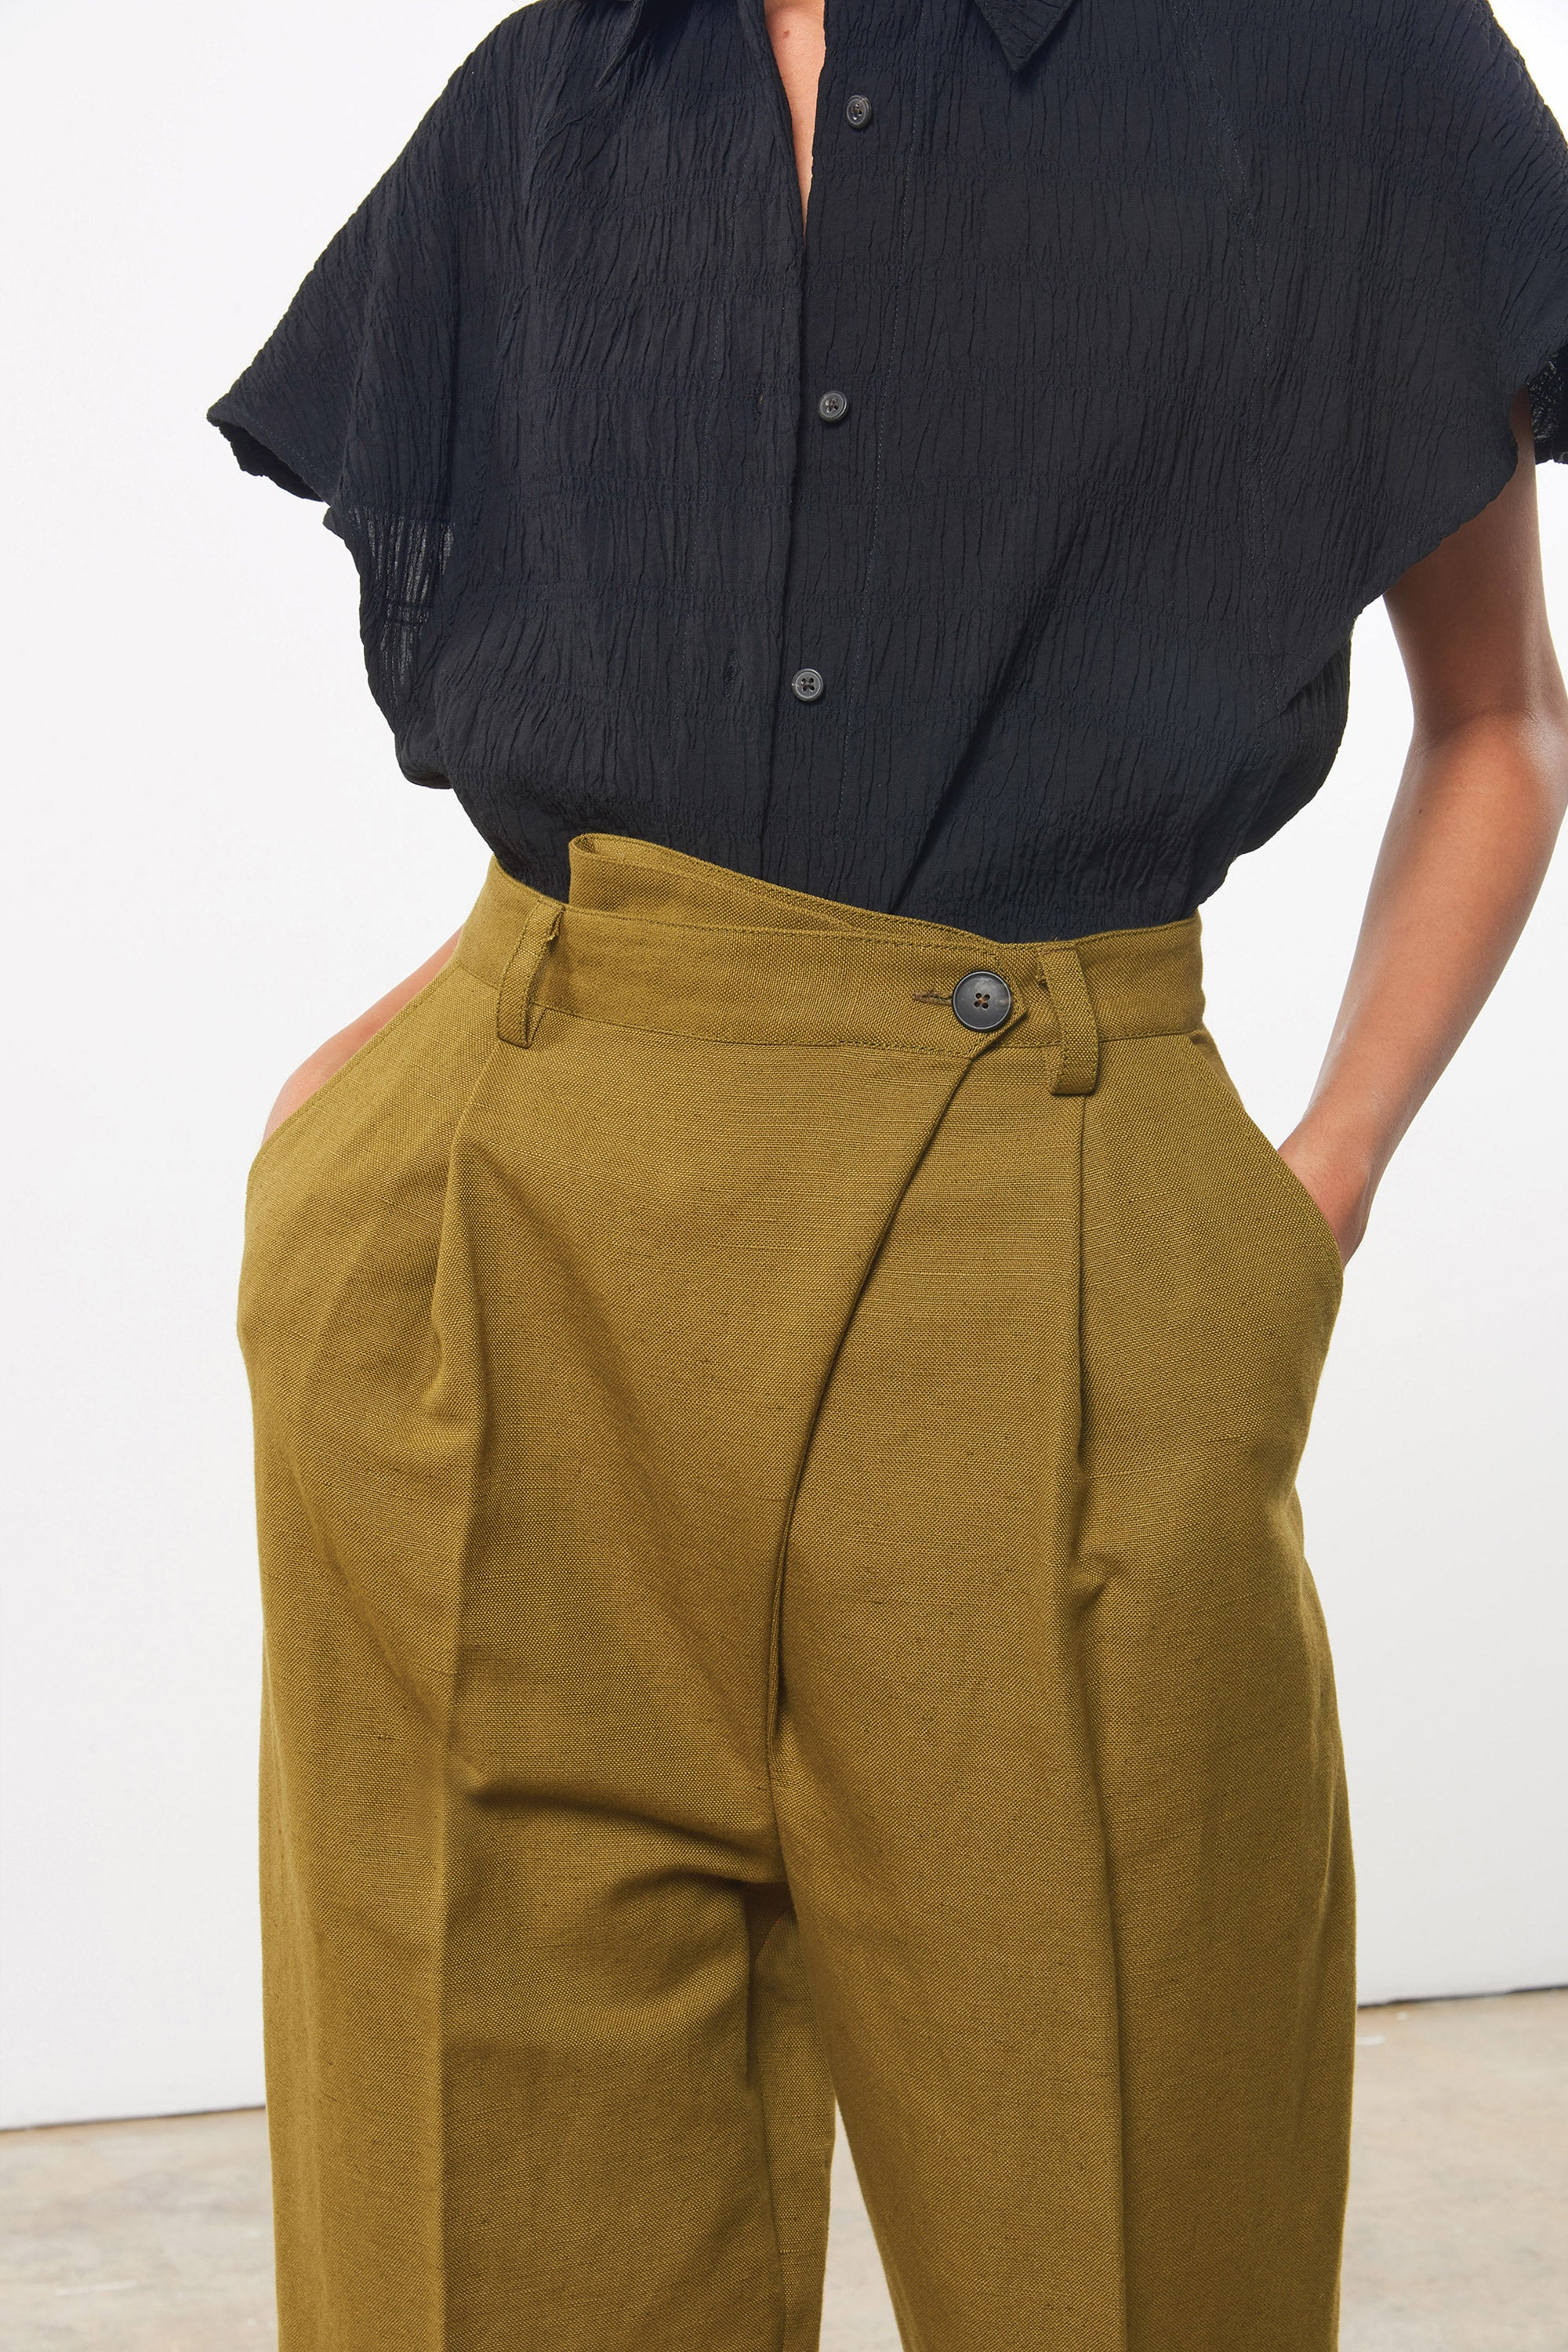 Mara Hoffman Olive Almeria pant in linen and cotton (detail)